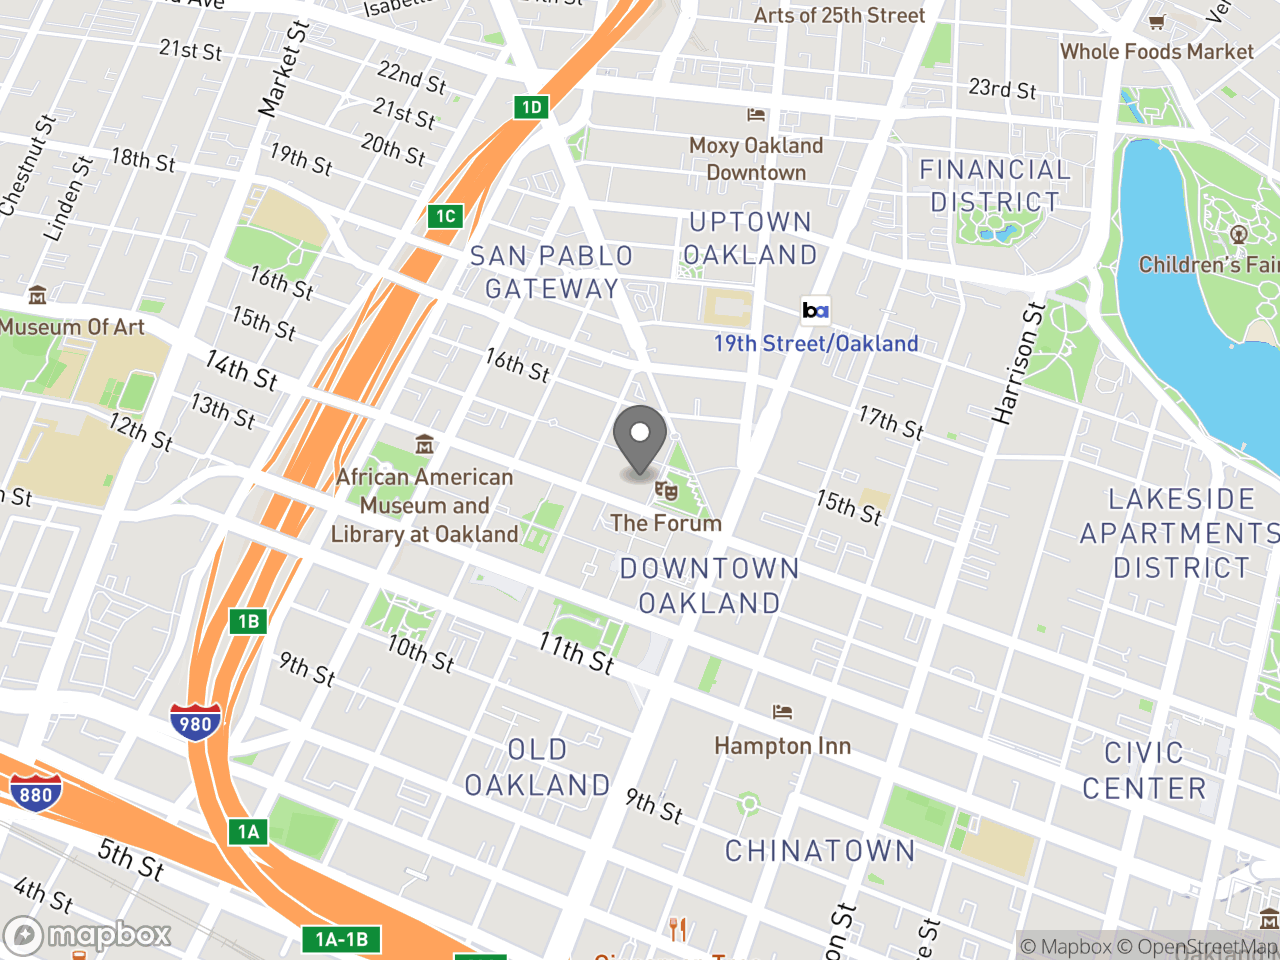 Map location for Mayor's Commission on Persons with Disabilities, September 17, 2018, located at 1 Frank H Ogawa Plaza in Oakland, CA 94612